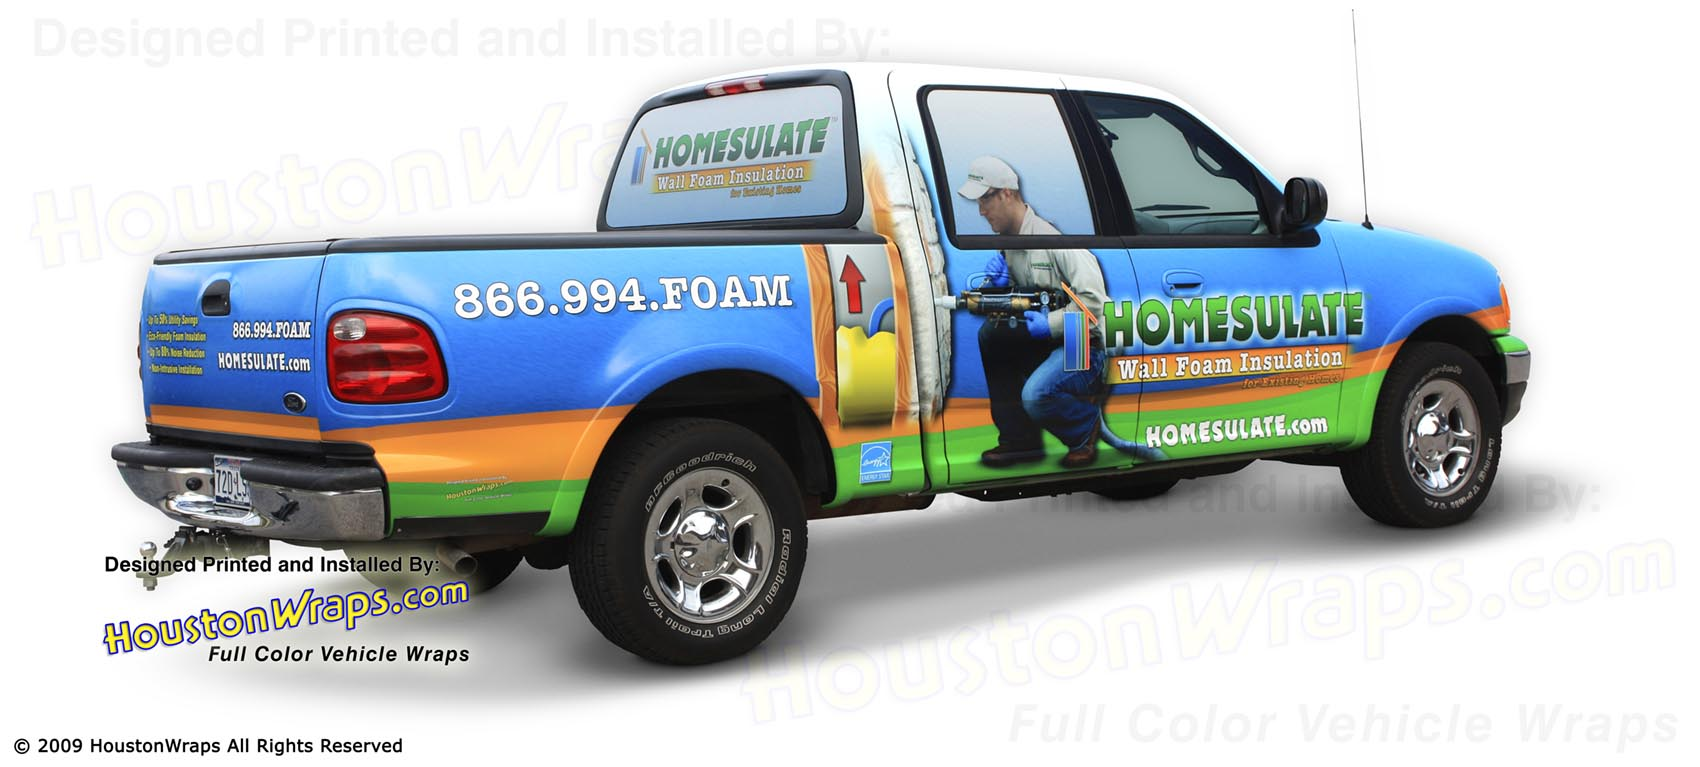 Houston Wraps - Homesulate - Truck 2 Wrap